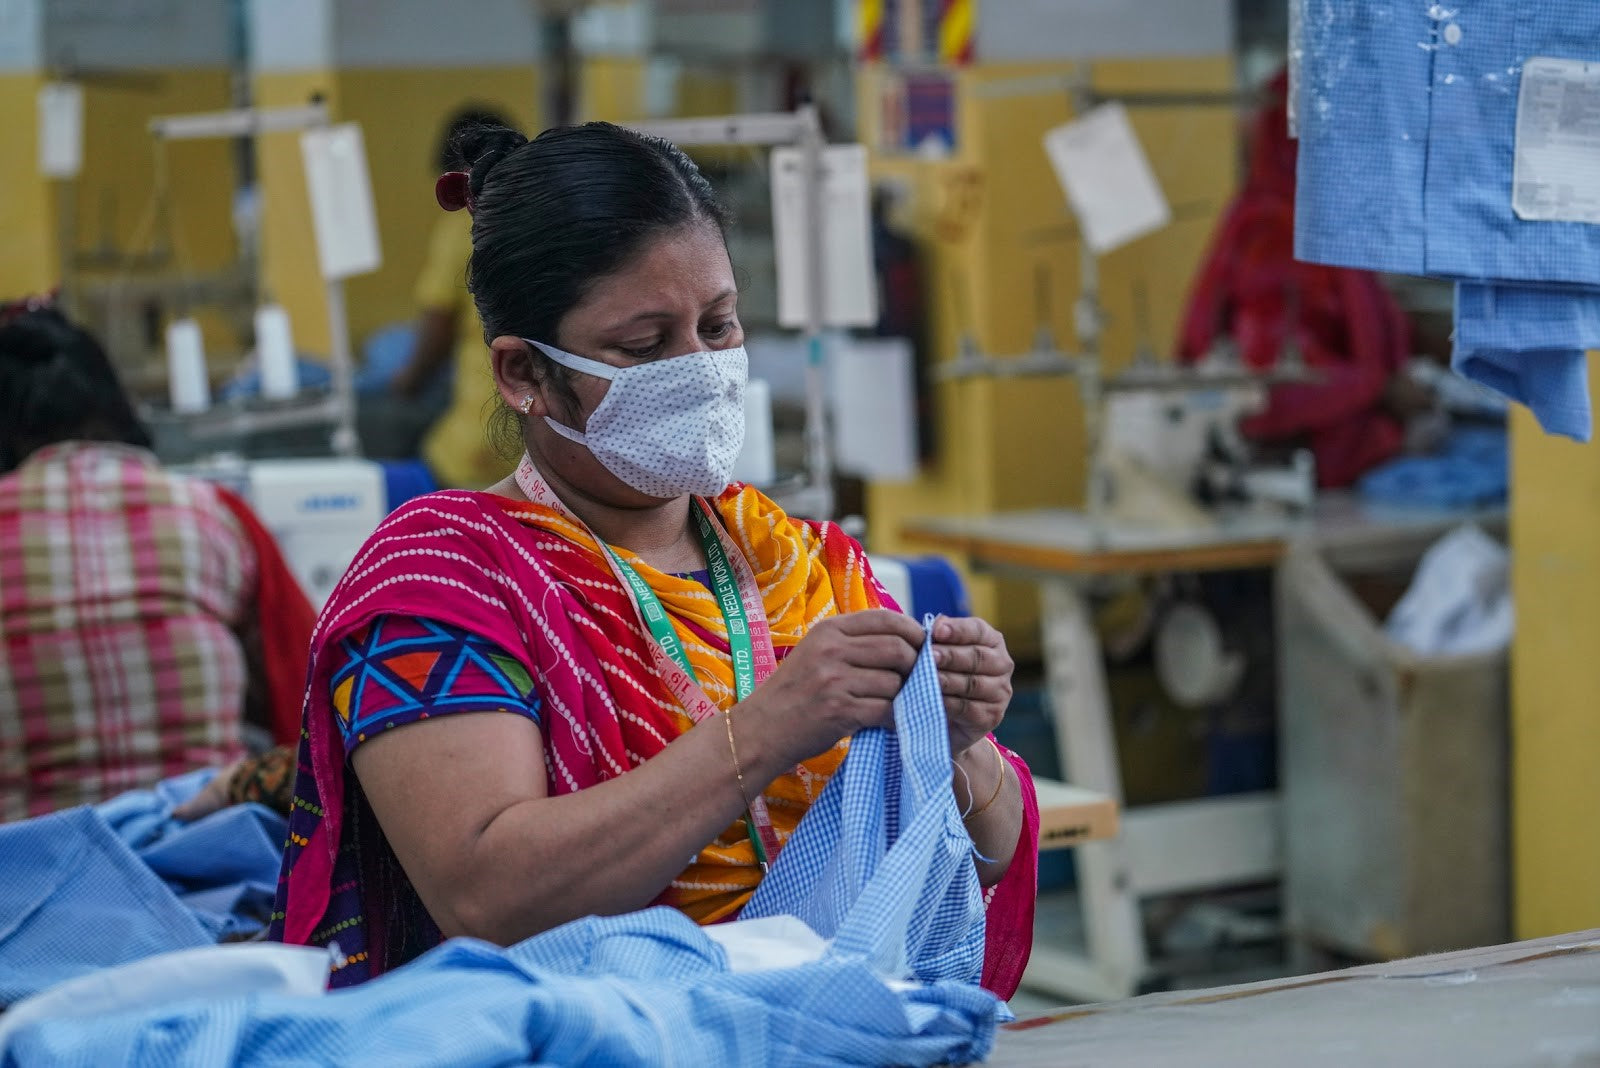 Sewing technician at work in a Dhaka factory during COVID-19.